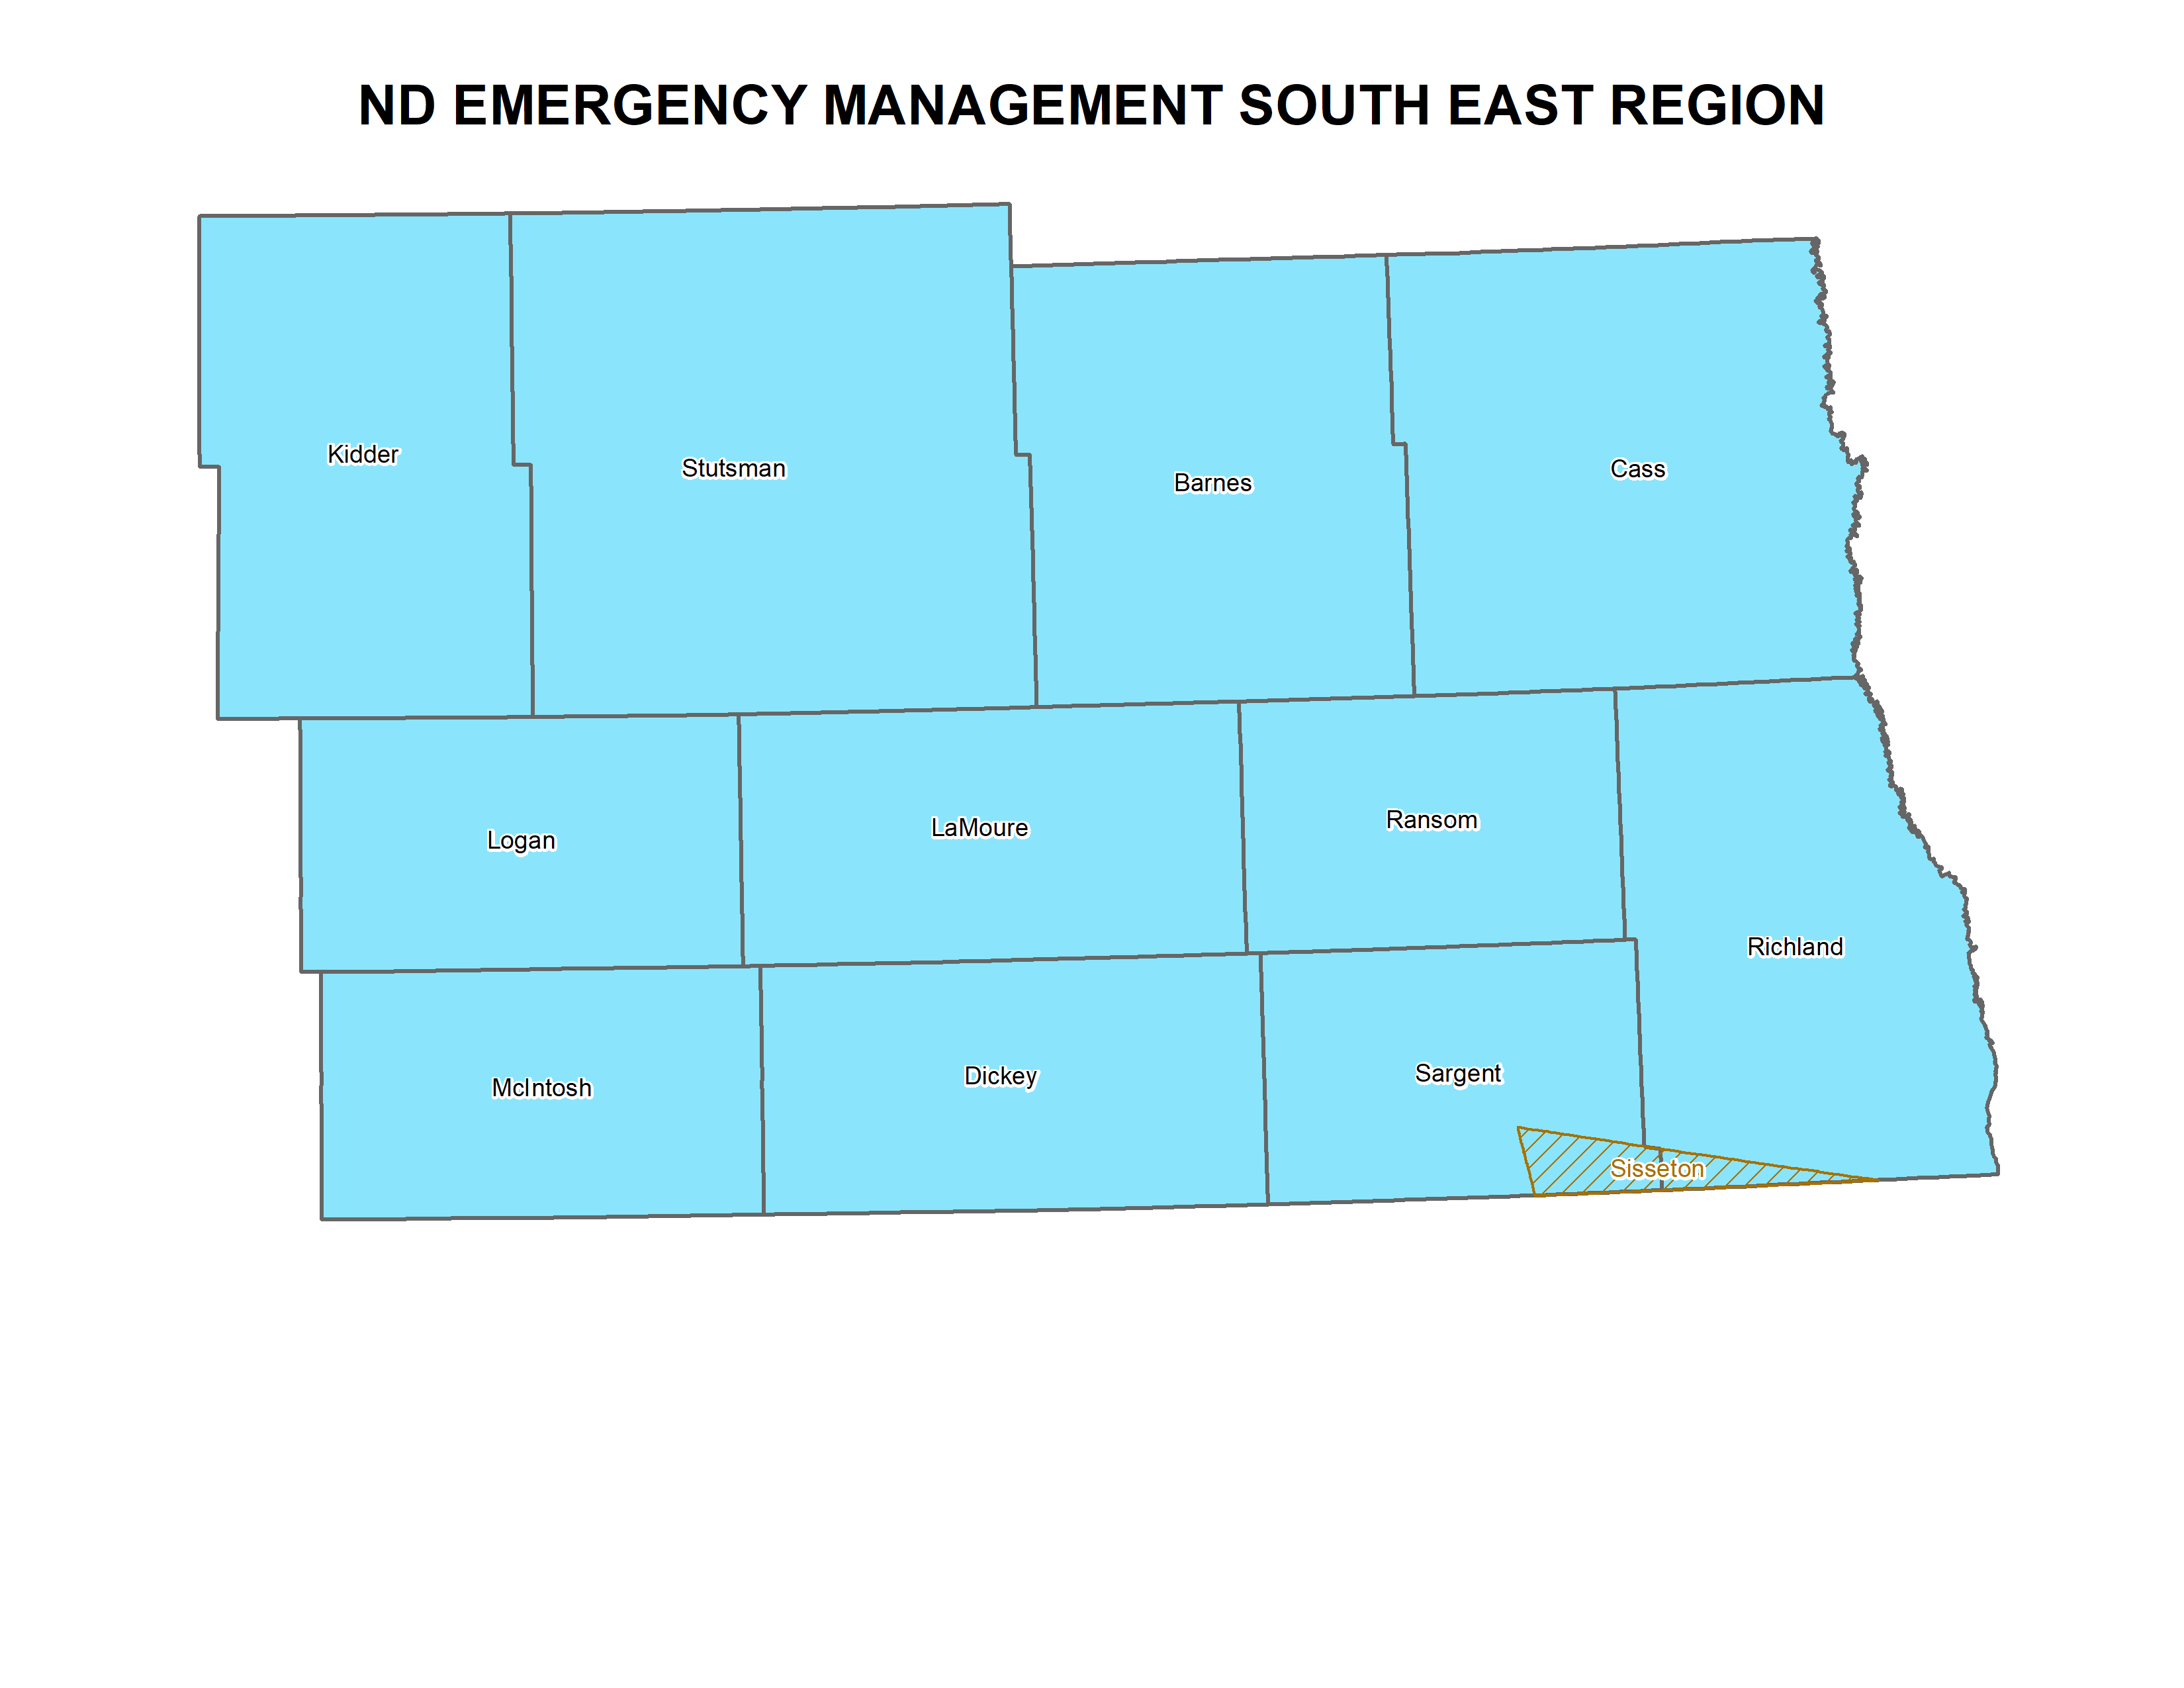 Southeast ND Region